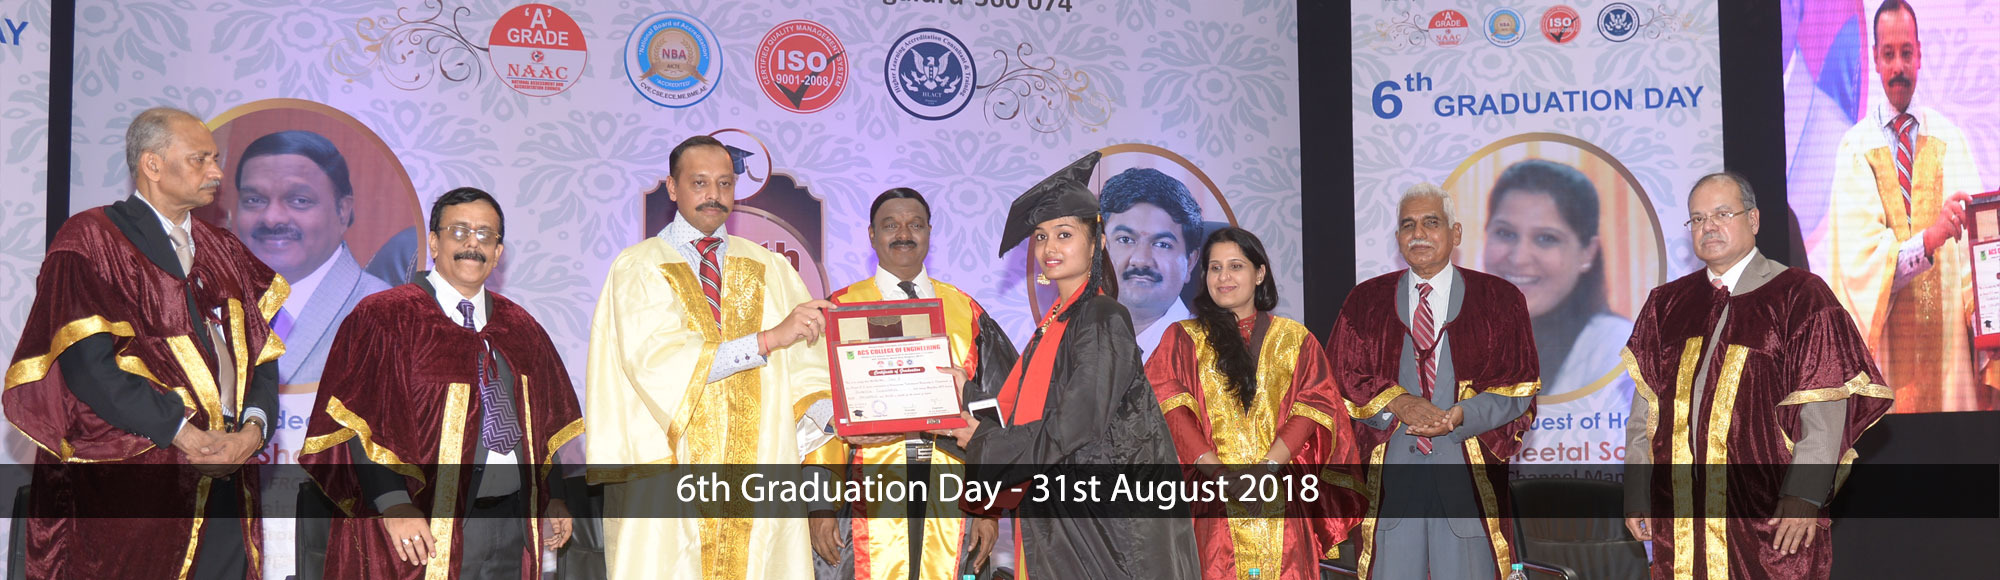 6th-Graduation-Day-31st-August-2018-2